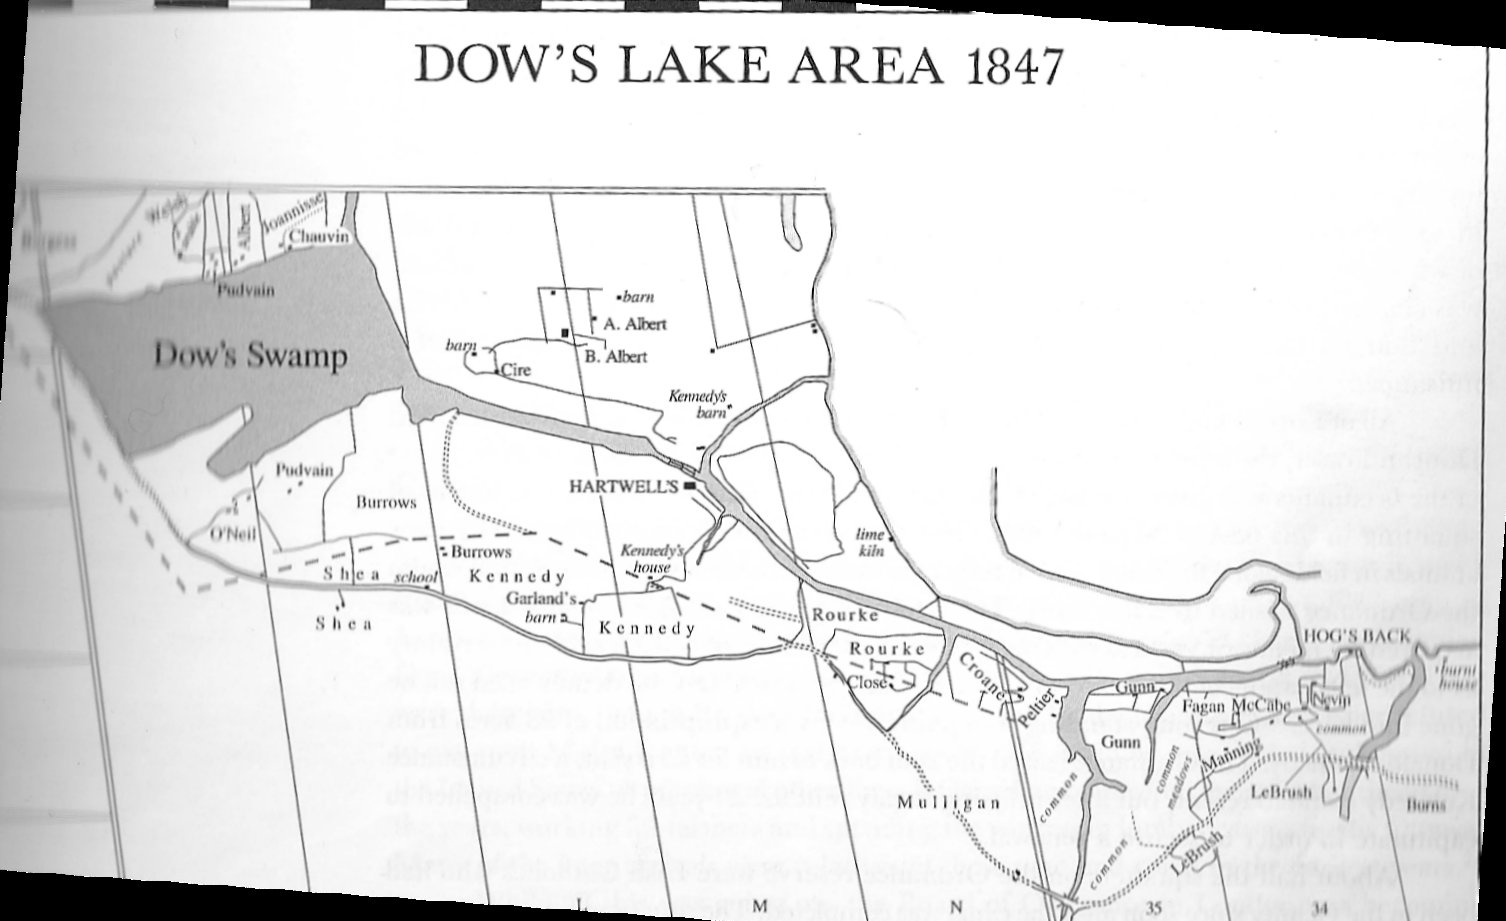 Dow's Lake in 1847